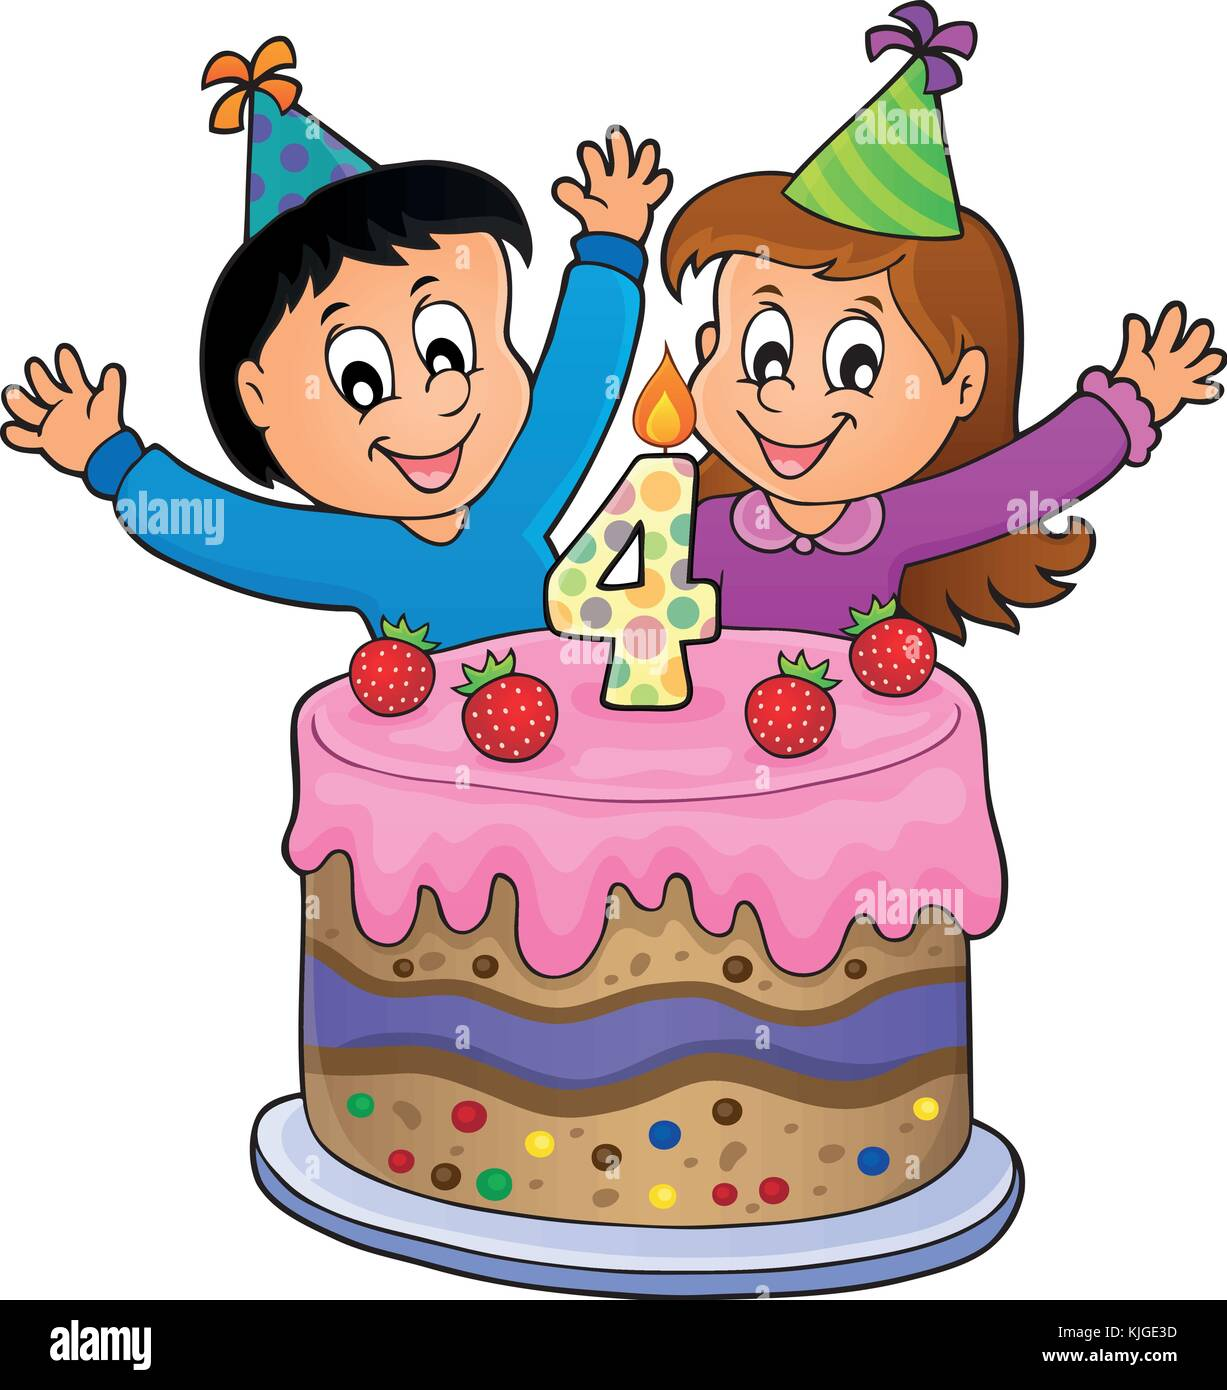 Search Results For 4 Year Old Boy Birthday Cake Stock Vector Images